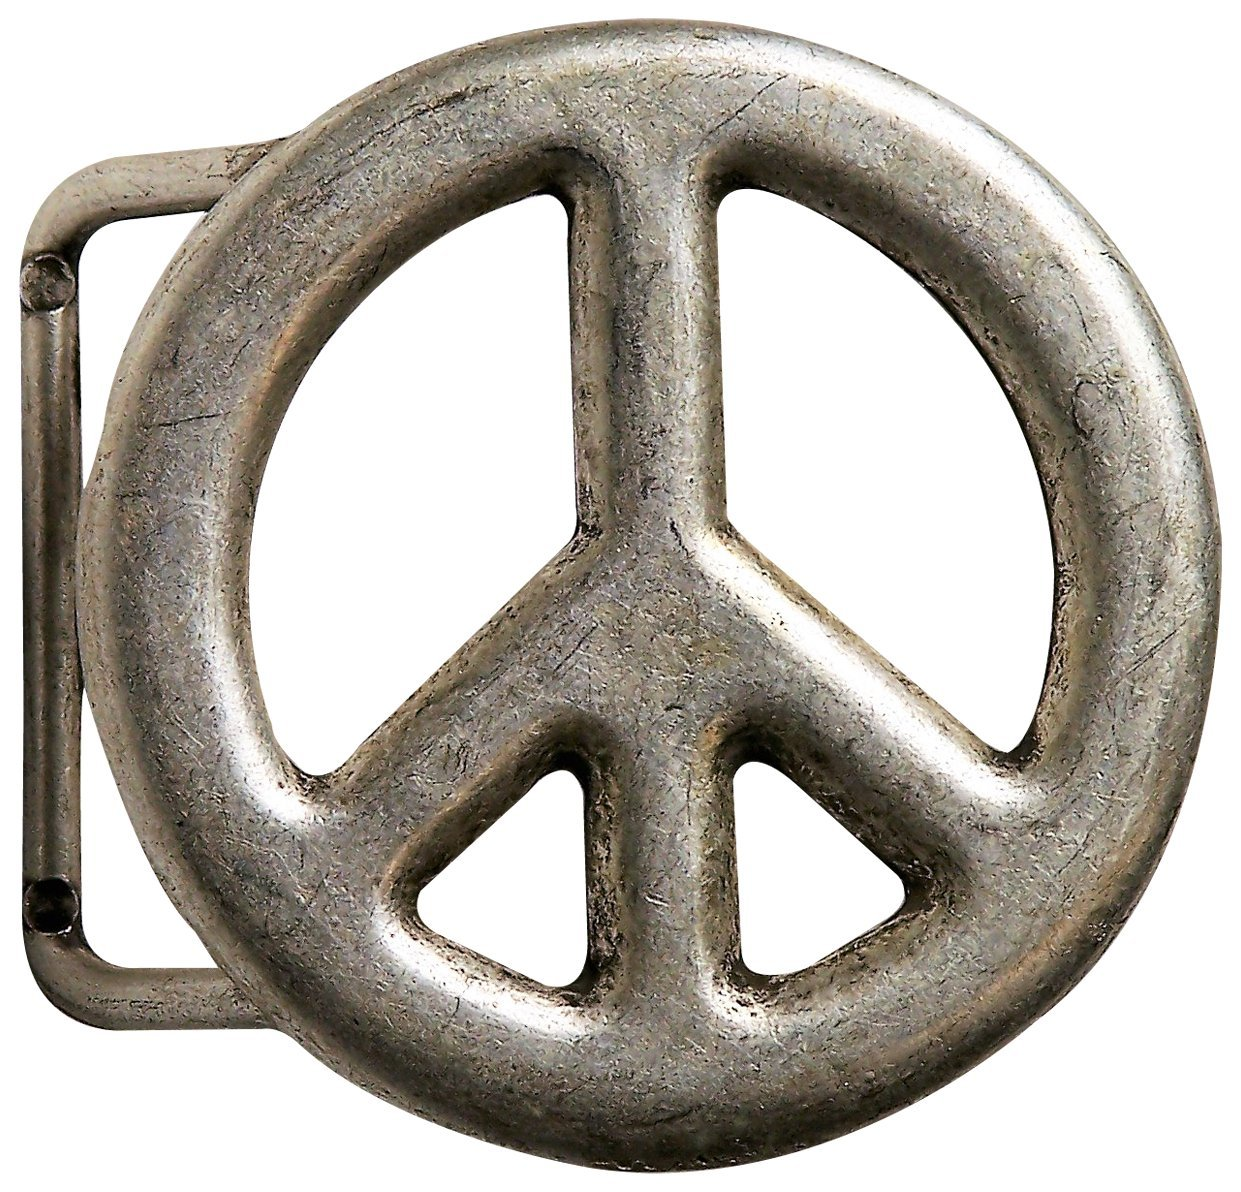 FRONHOFER Peace belt buckle, antique silver, 1.5'/4cm, peace symbol buckle 18183, Color:Silver color, Size:One Size 1.5'/4cm